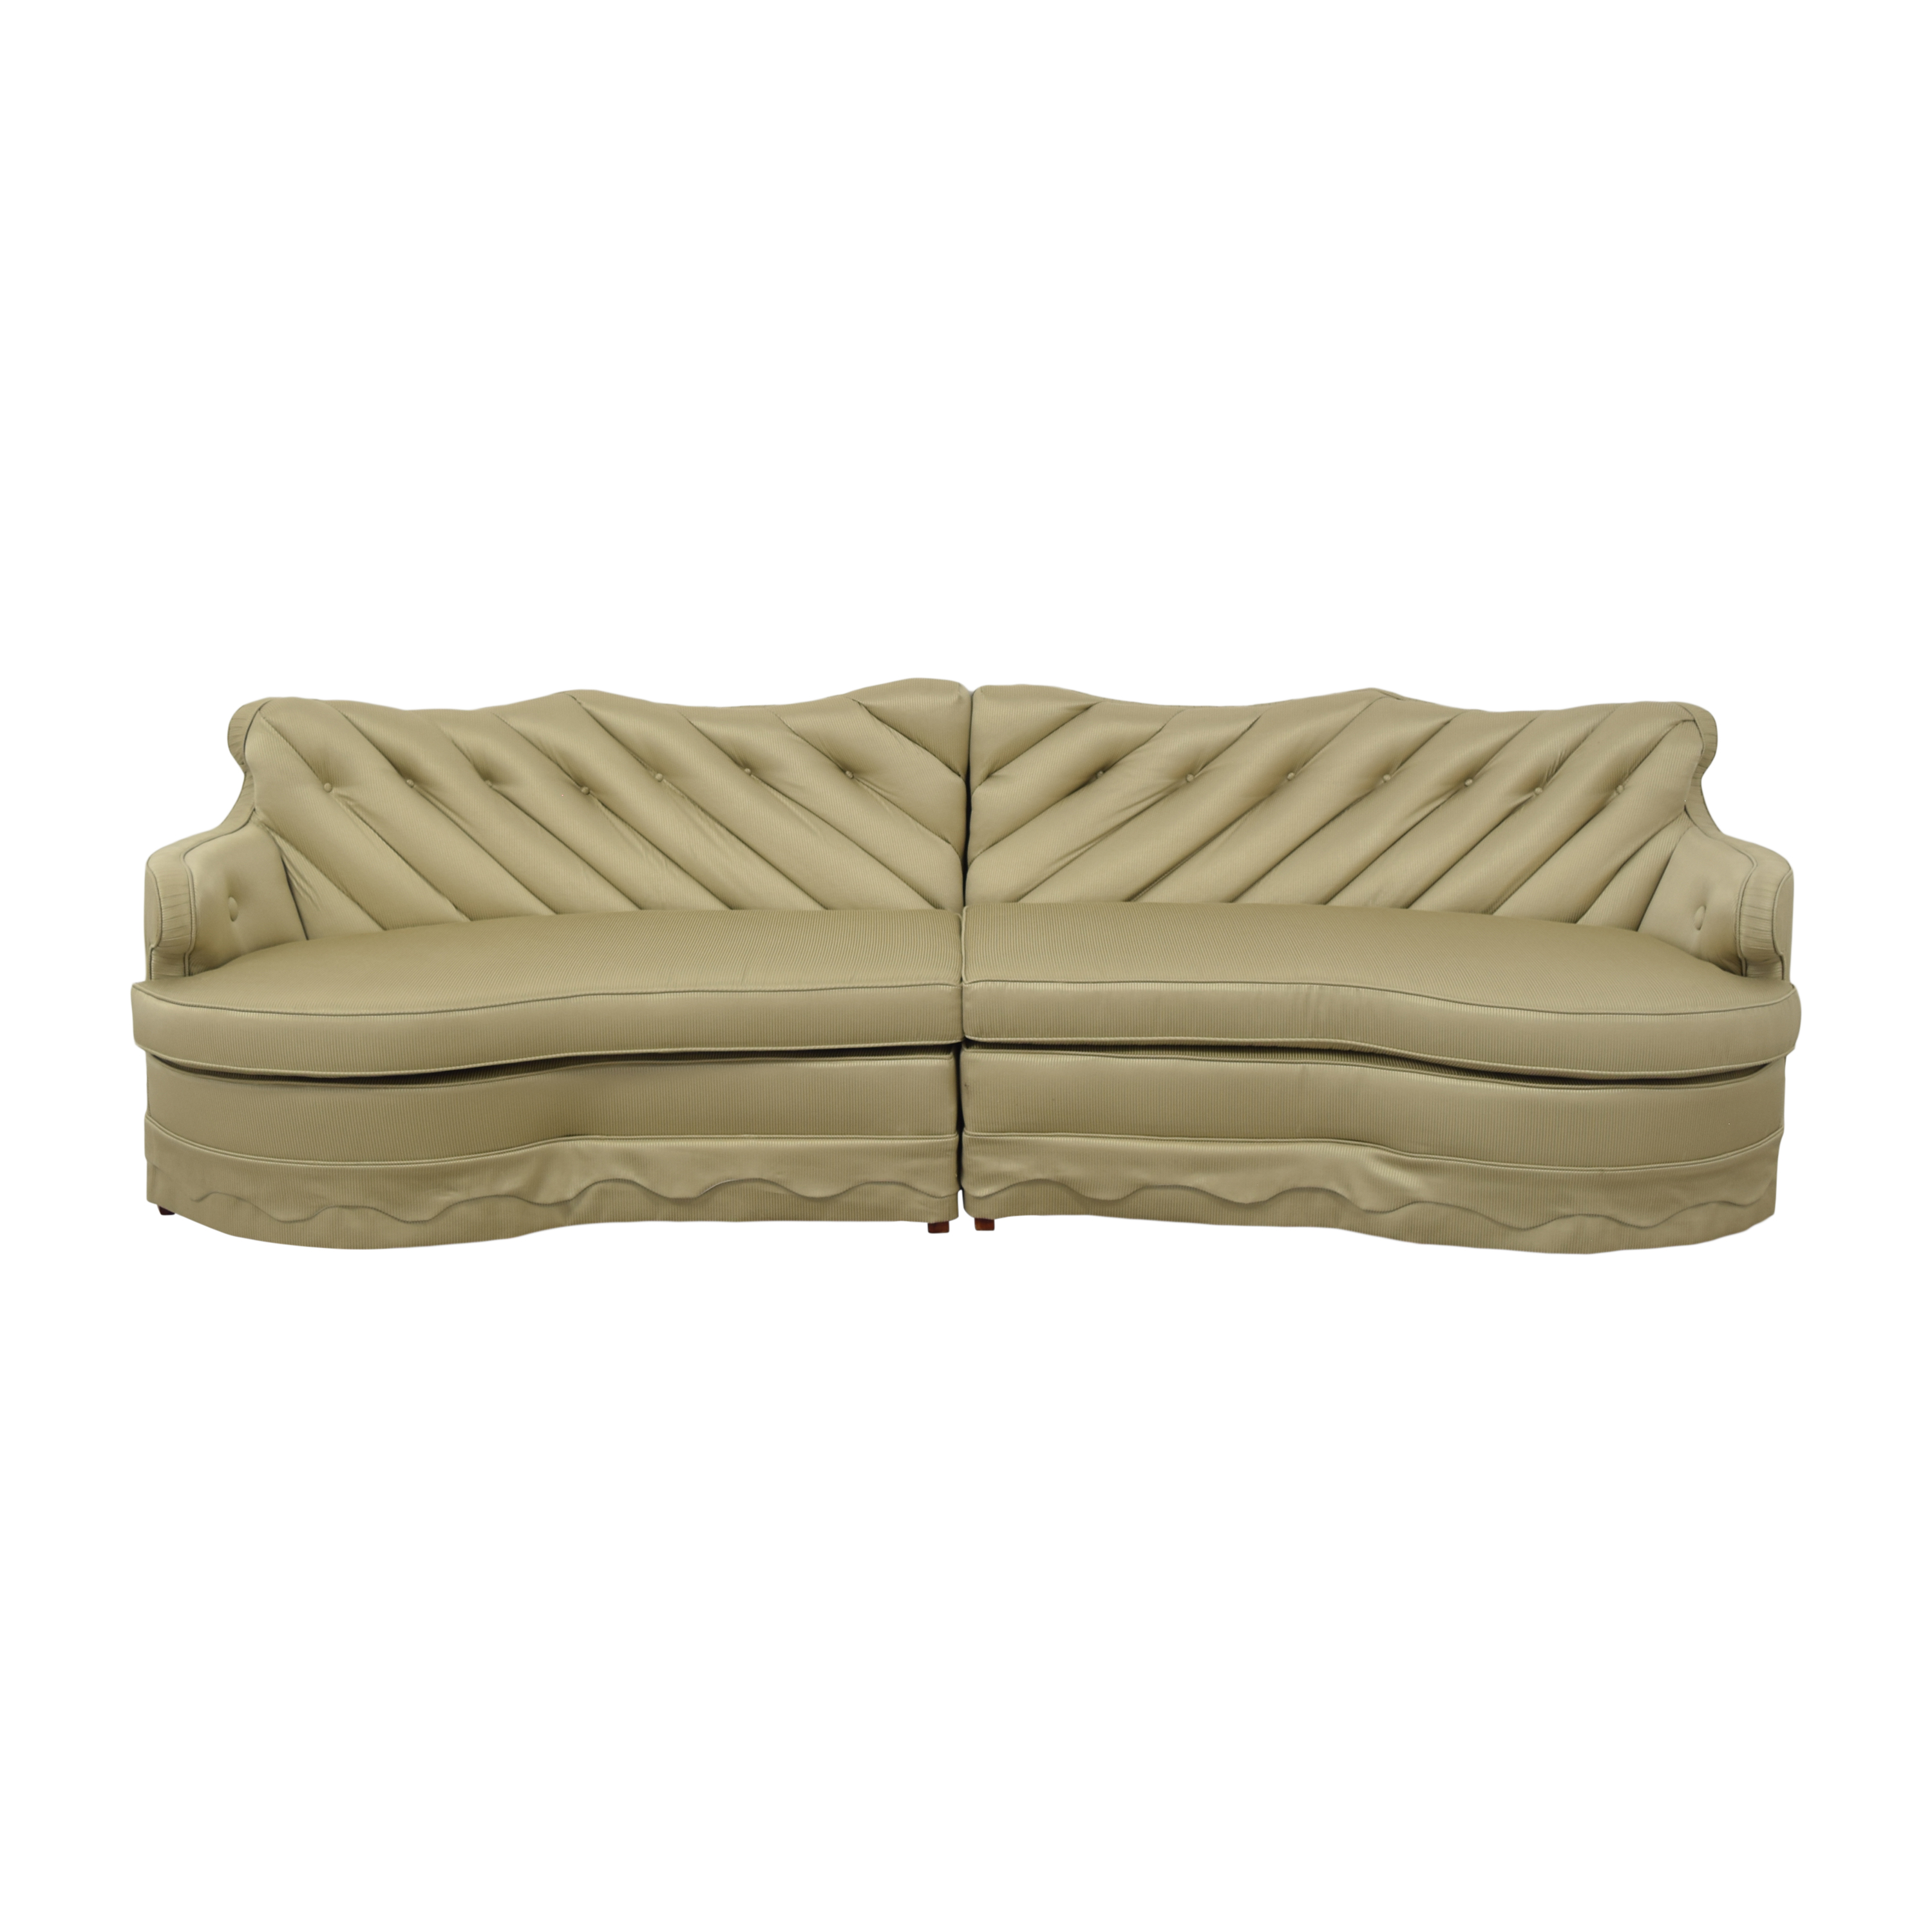 Vintage Curved Sectional Sofa / Sofas